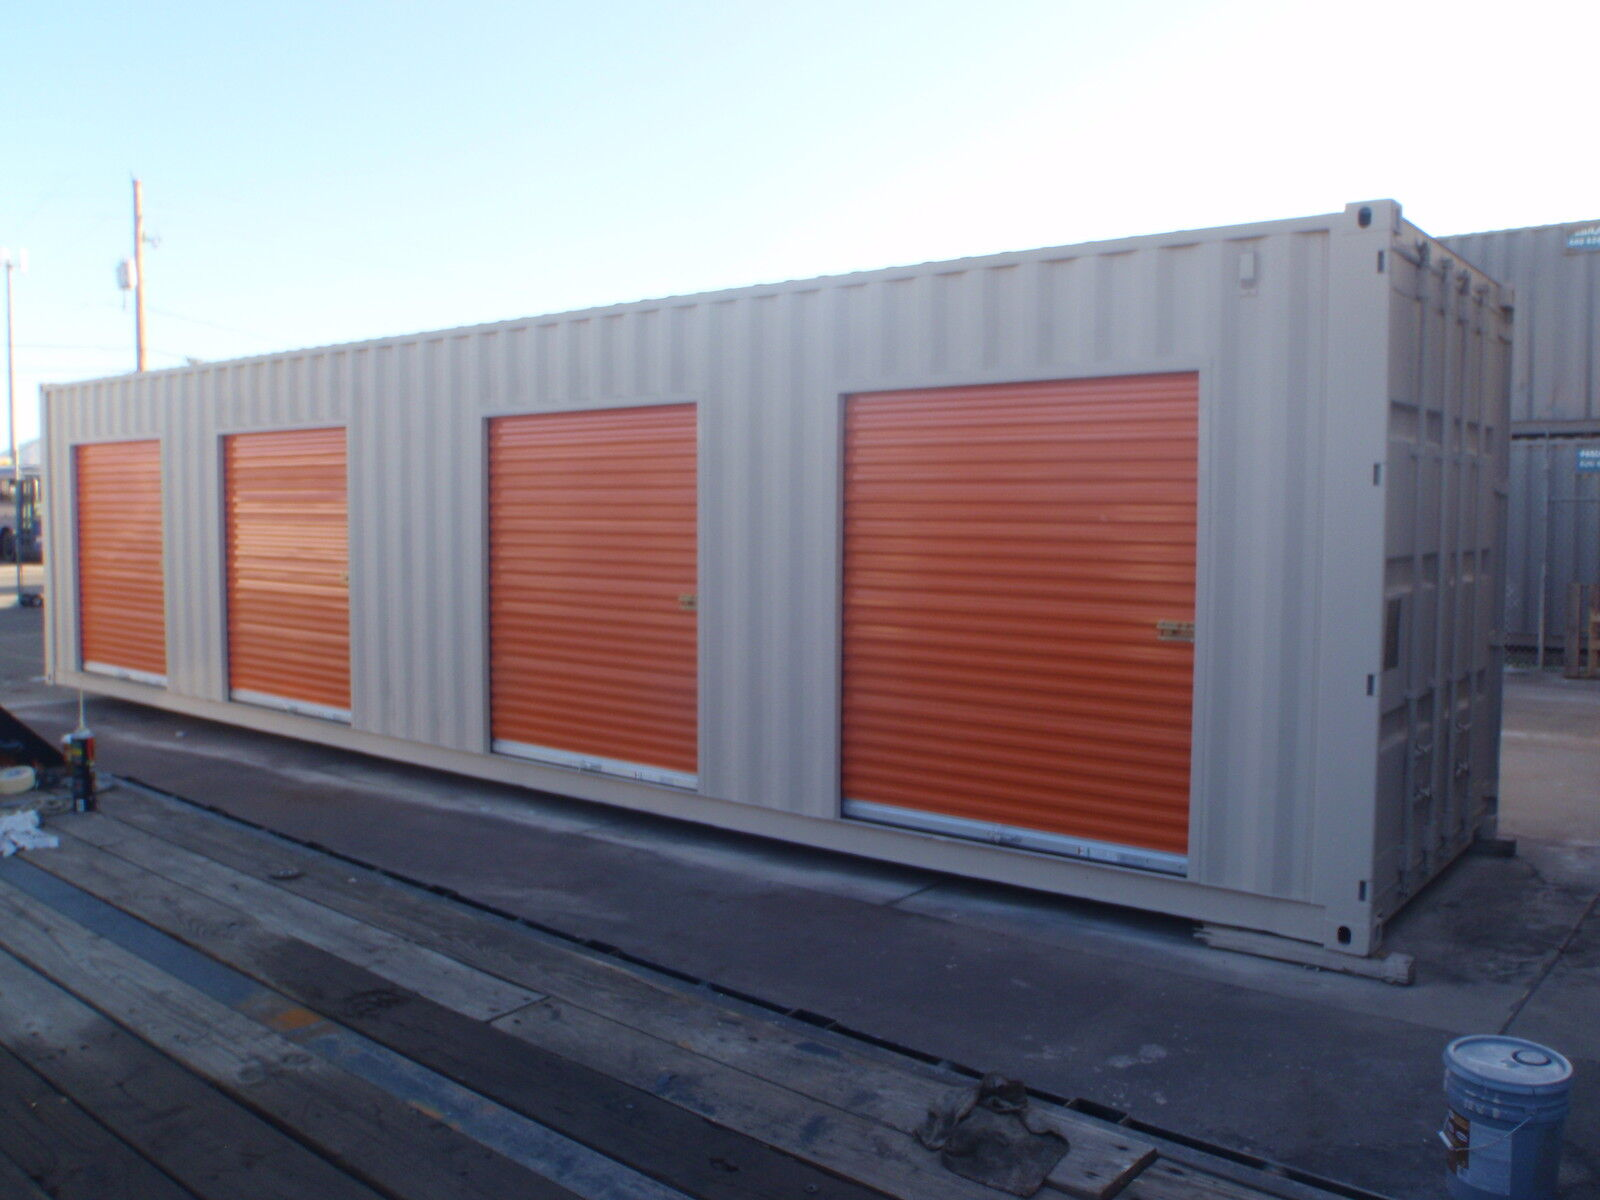 Upack Quote Portable Storage Containers & Office For Sale $5875.00  Delivery